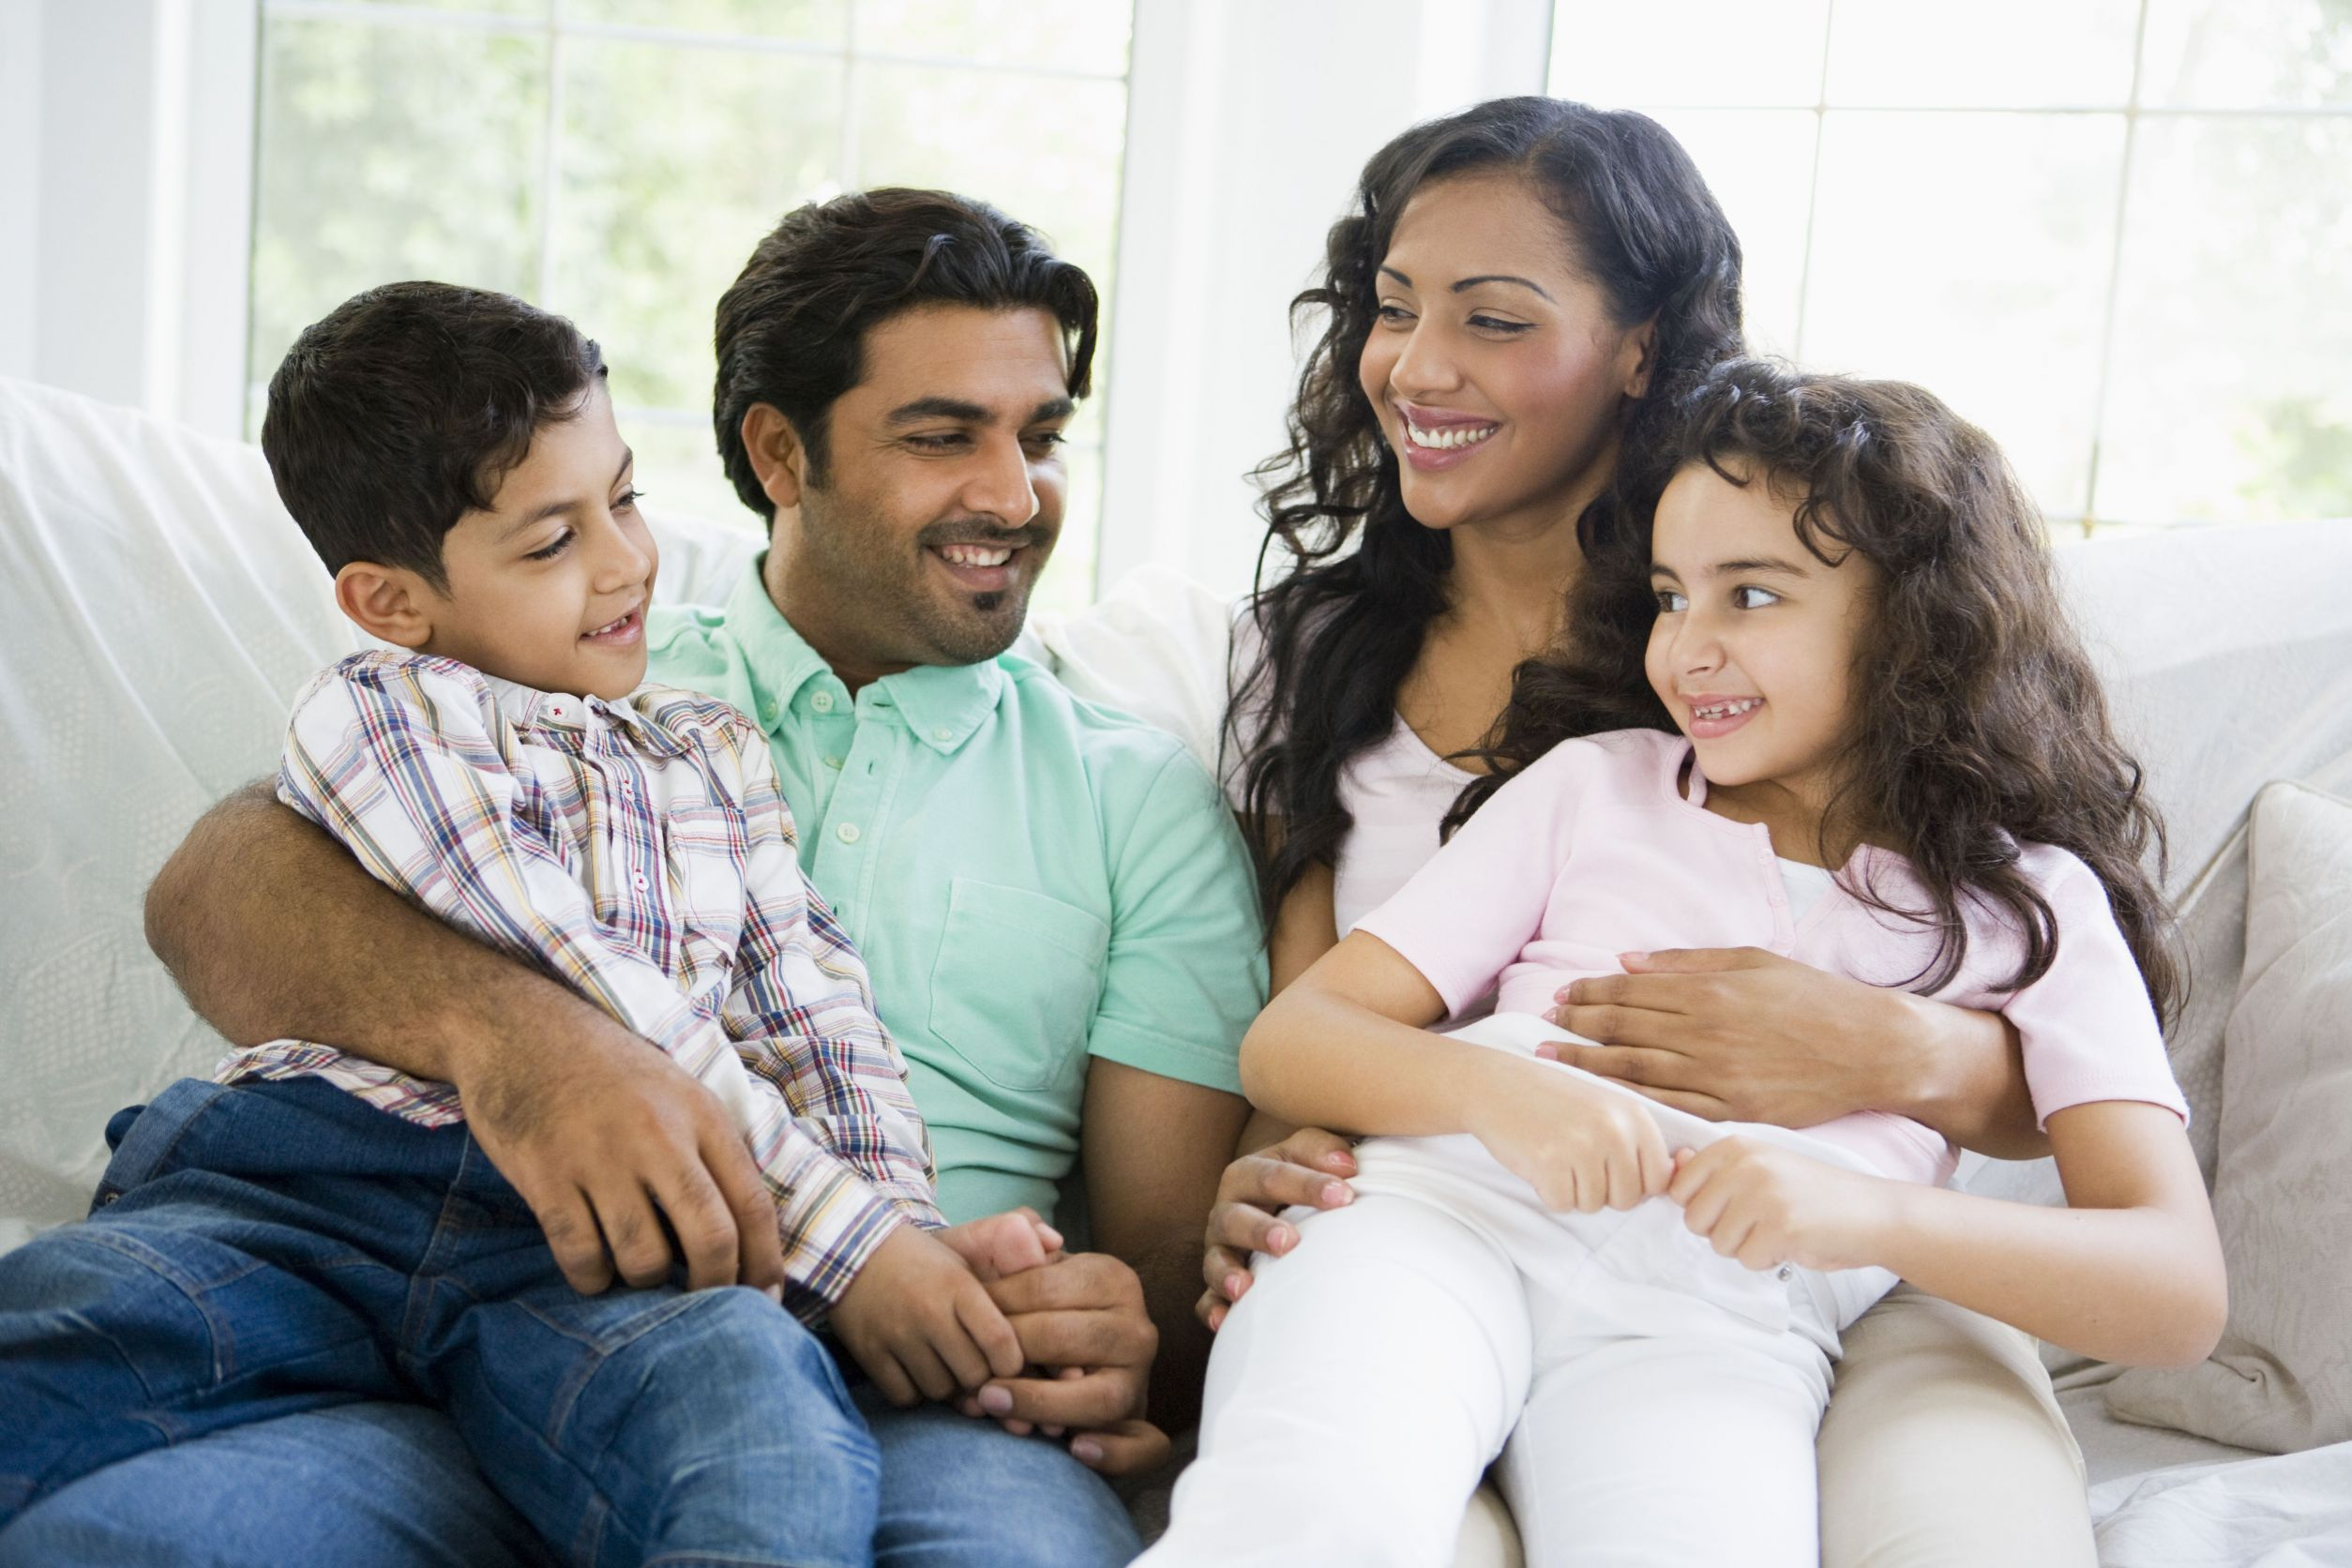 A smiling South Asian father and mother sitting on a couch with the son and daughter in their laps.